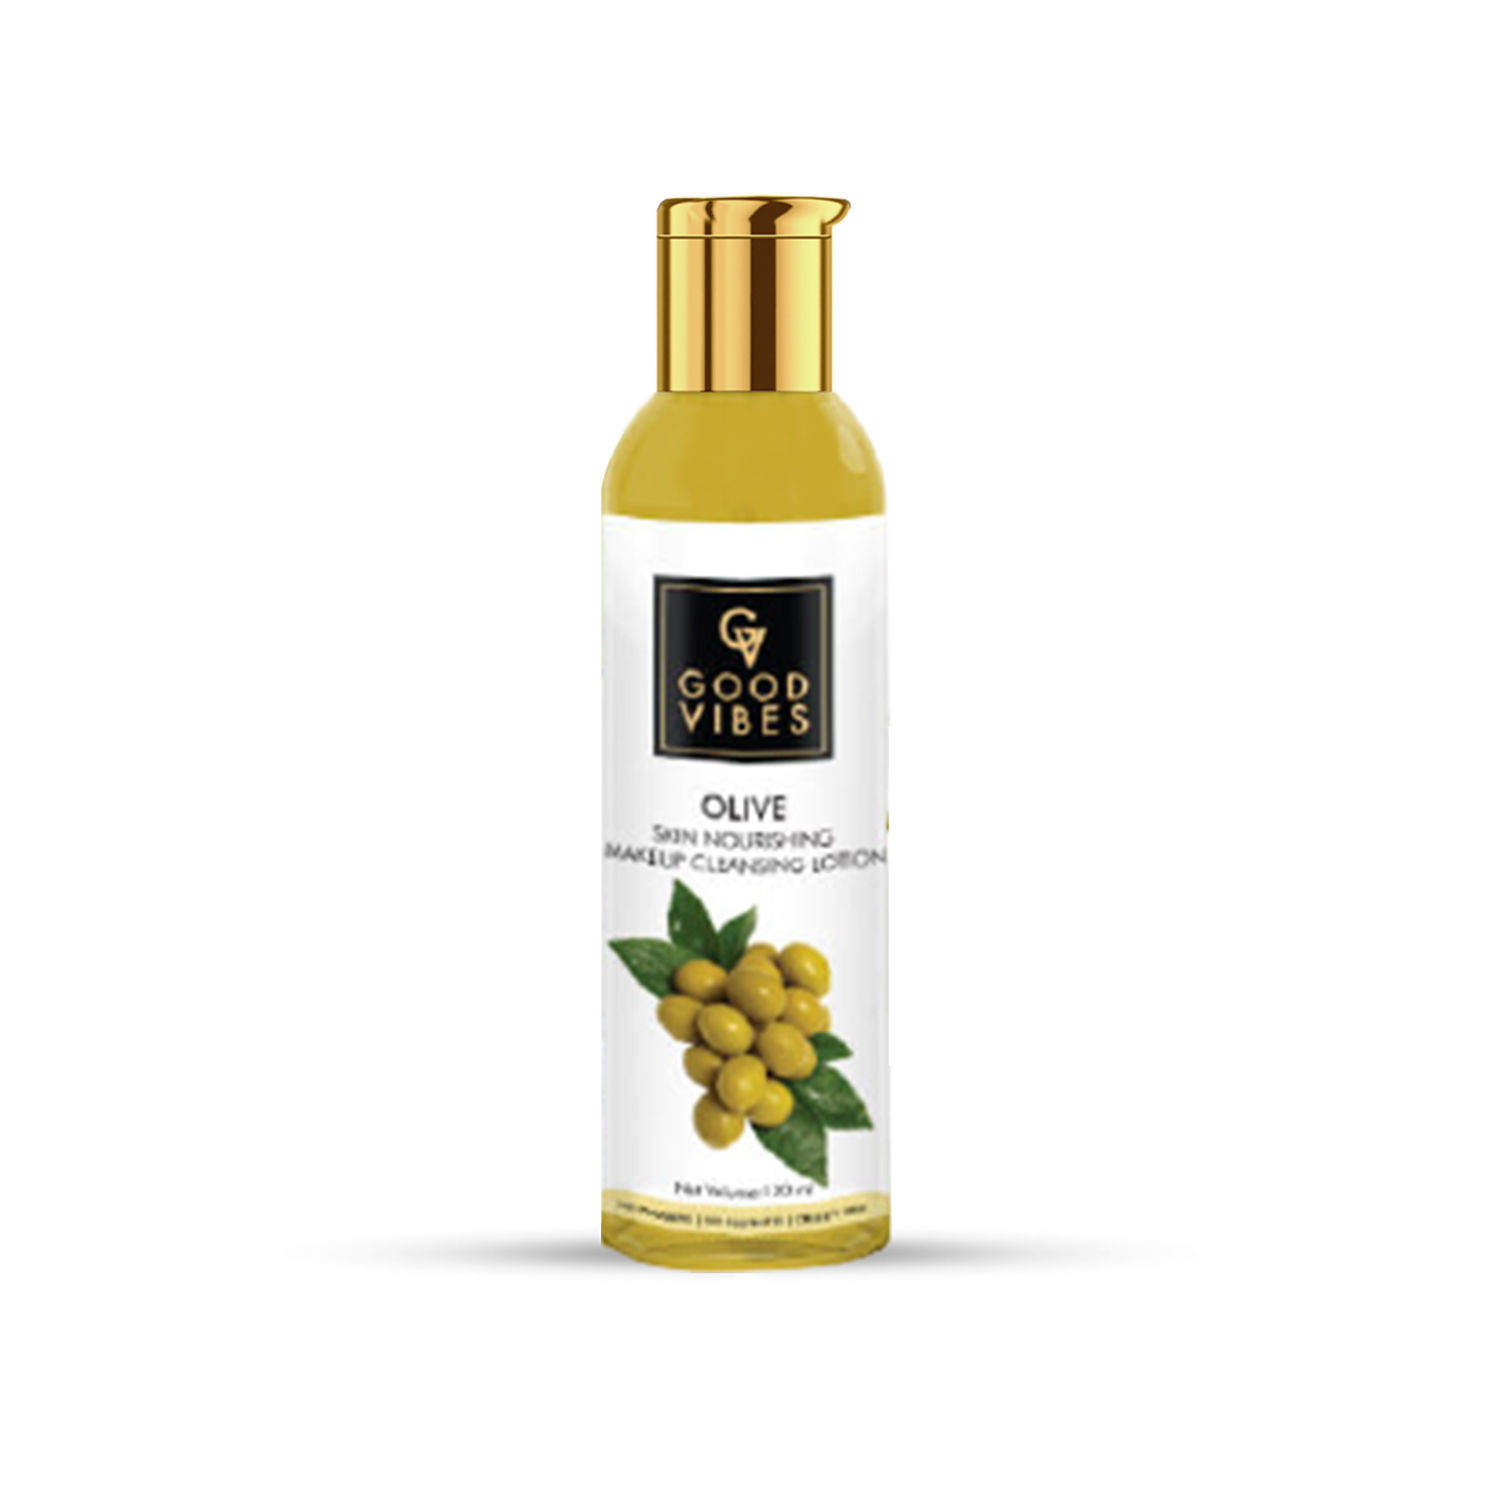 Good Vibes | Good Vibes Skin Nourishing Makeup Cleansing Lotion - Olive (120 ml)